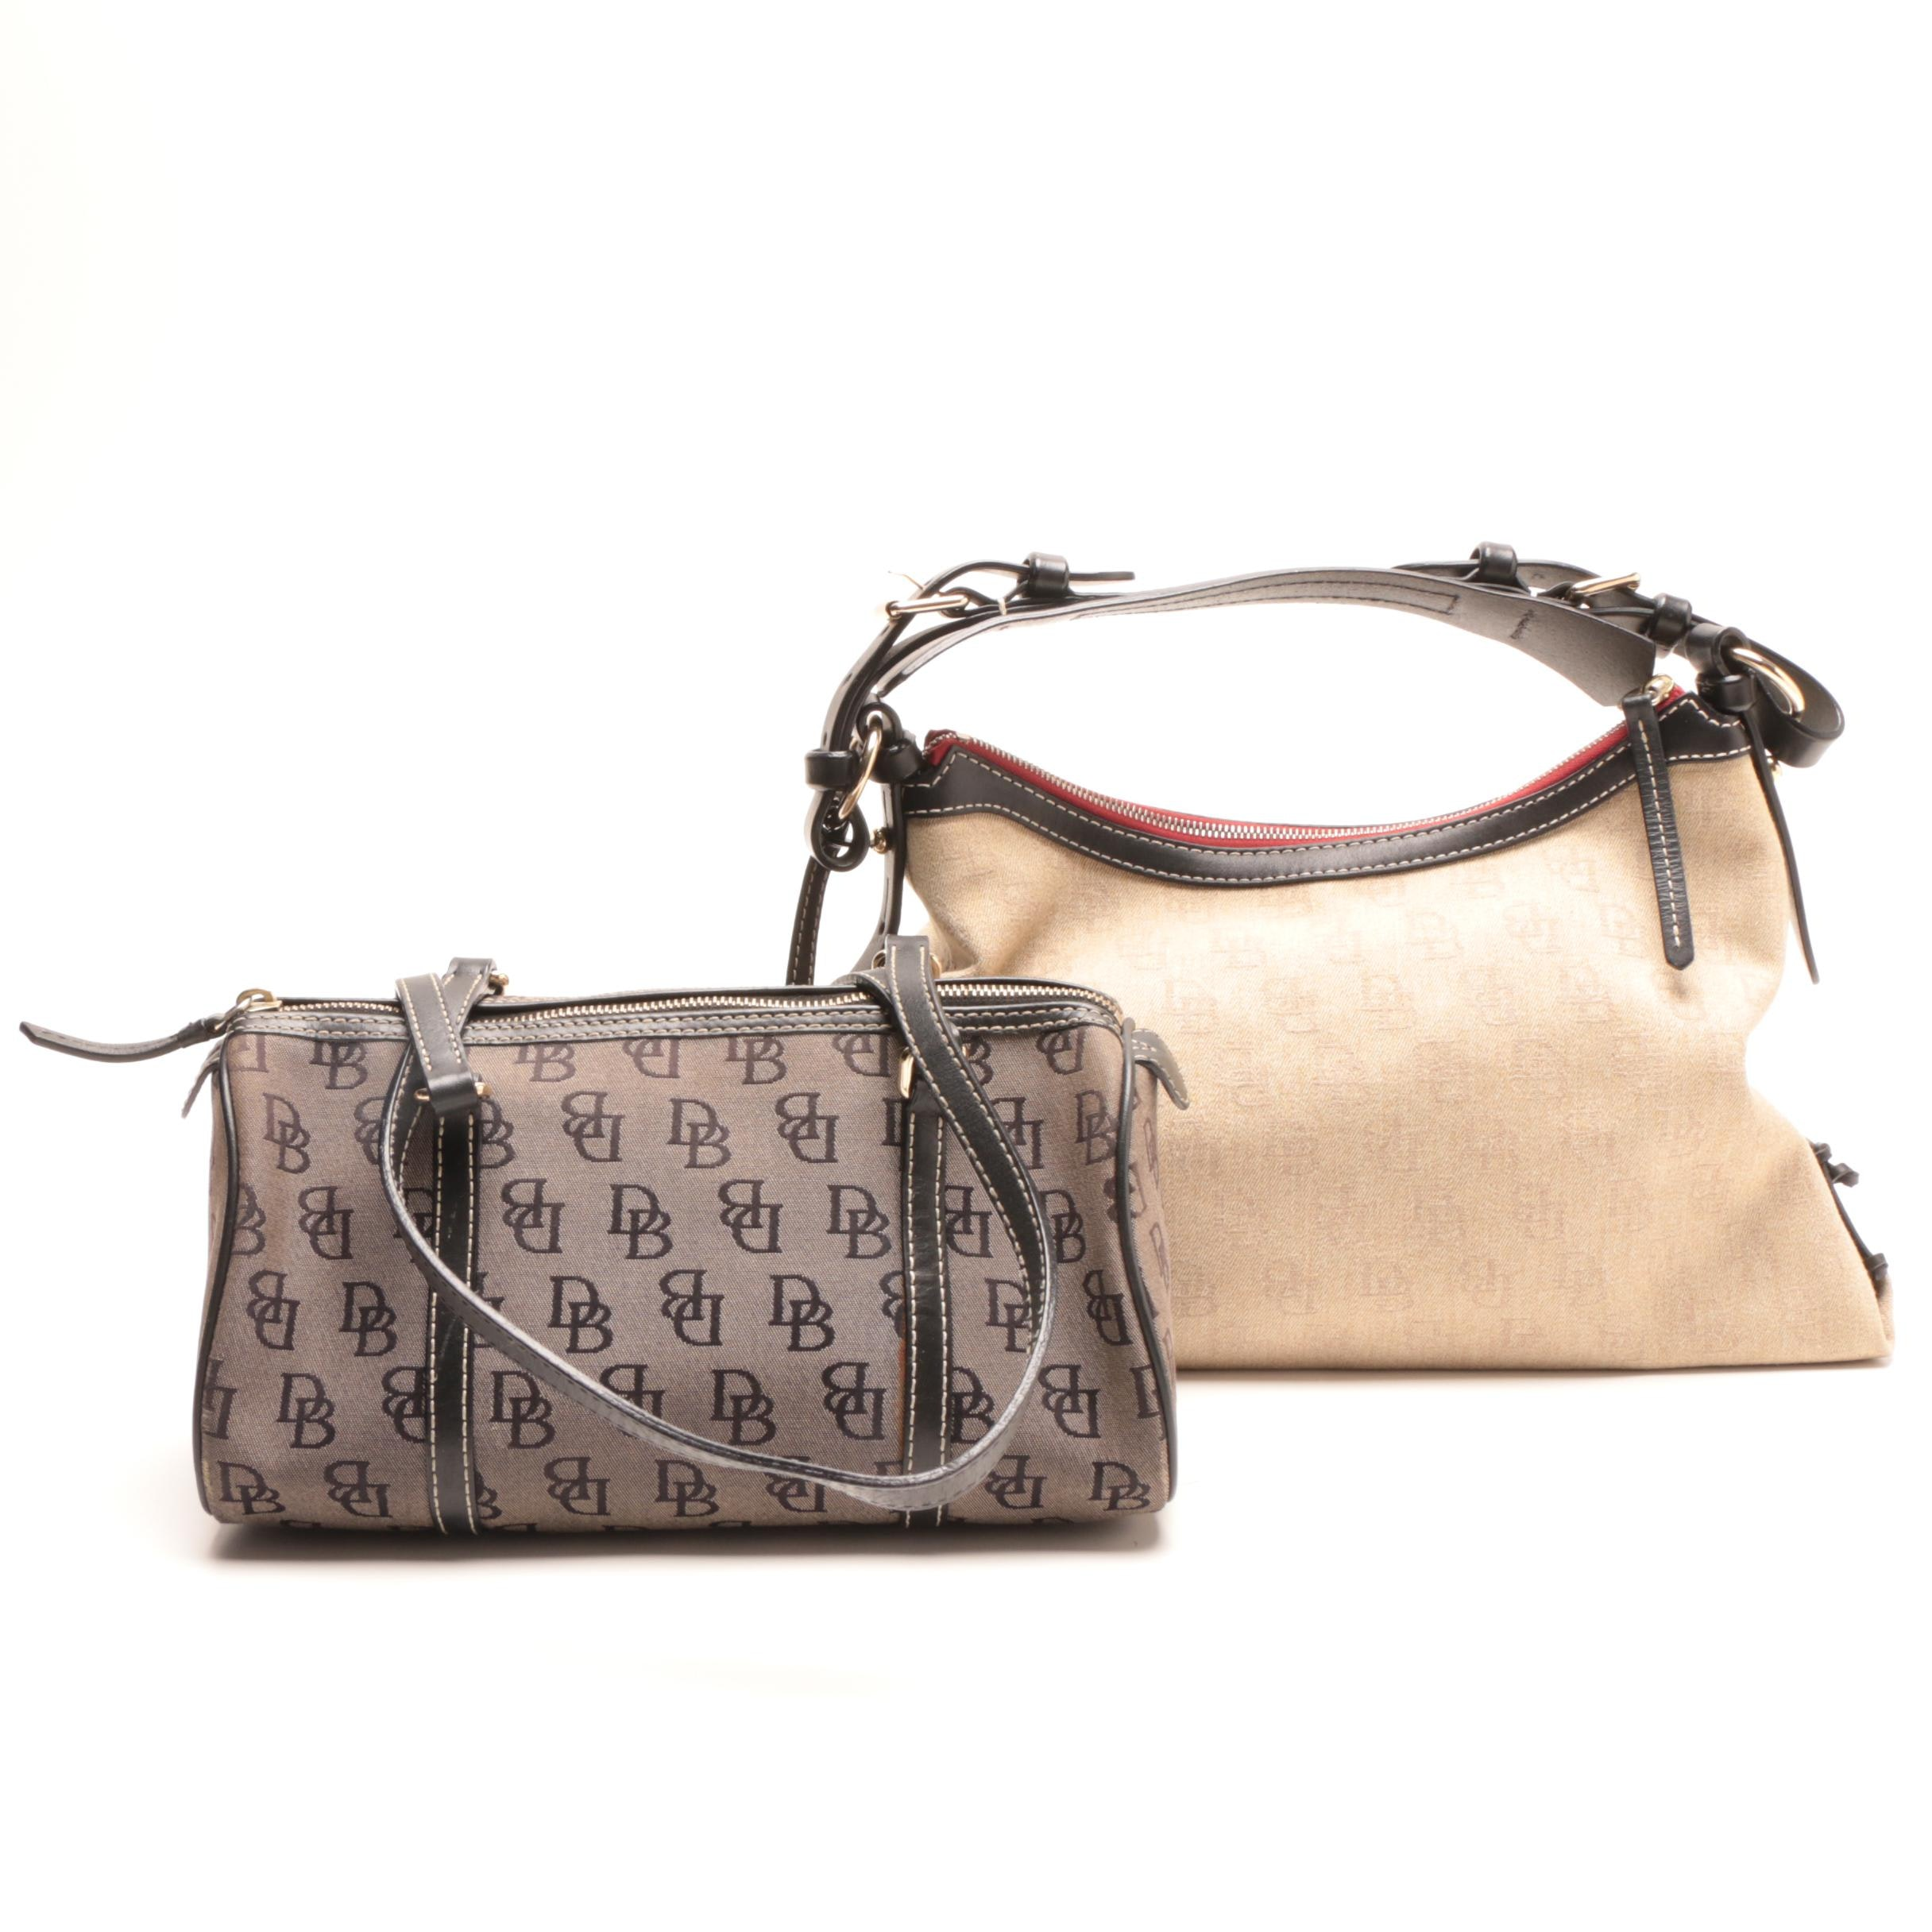 Dooney & Bourke Signature Monogram Canvas and Leather Handbags